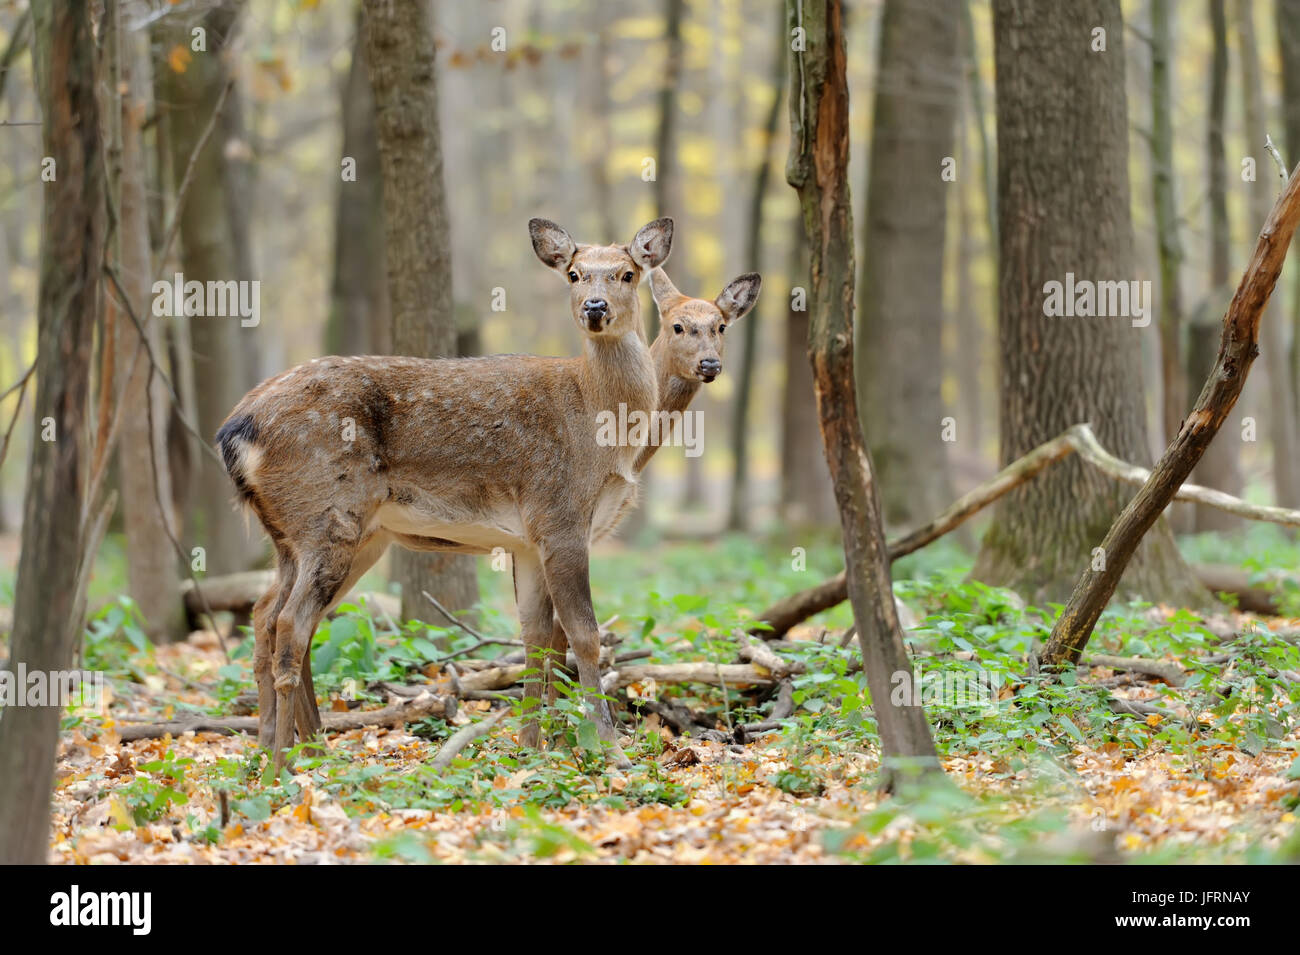 Beautiful young red deer in forest - Stock Image